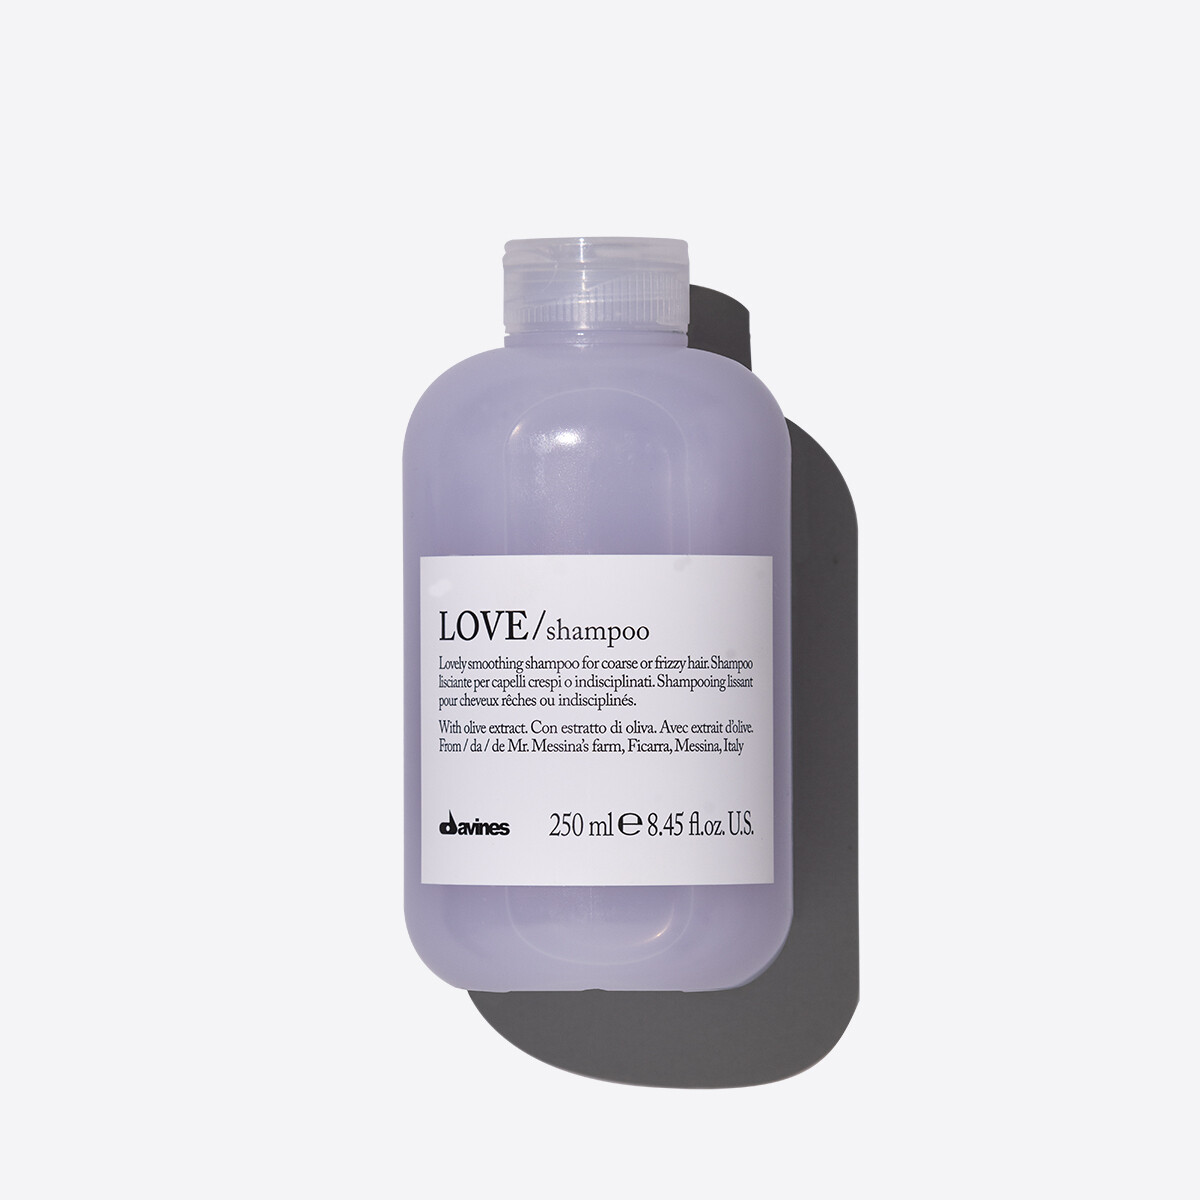 LOVE/shampoo 250 ml